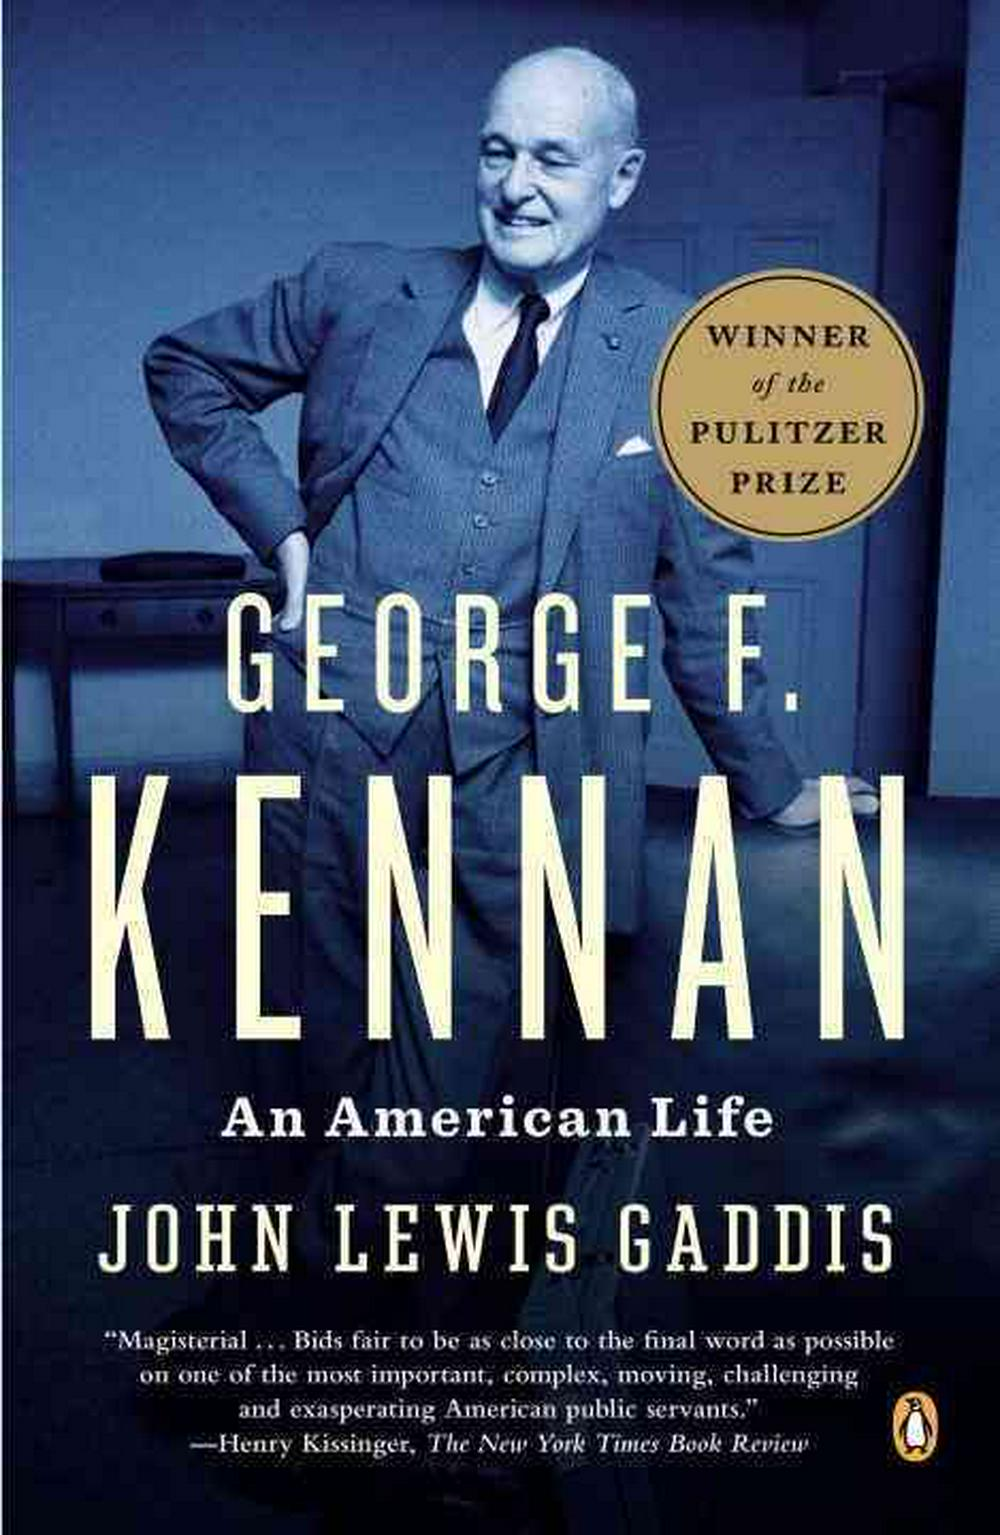 a literary analysis of strategies of containment by john lewis gaddis John lewis gaddis (born 1941) is the robert a lovett professor of military and naval history at yale university he is best known for his work on the cold war and grand strategy.